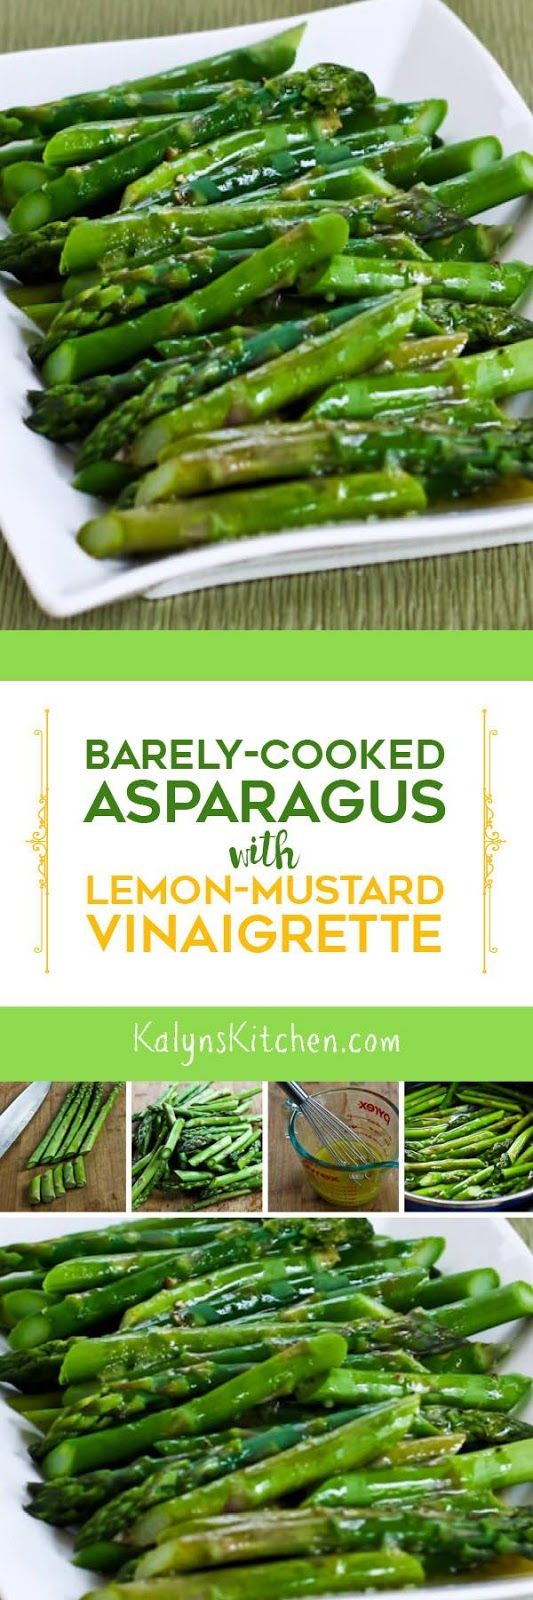 There are so many good ways to cook asparagus, but this Barely-Cooked Asparagus with Lemon-Mustard Vinaigrette is not only easy, quick, and delicious, but it's also low-carb, Keto, low-glycemic, gluten-free, dairy-free, vegan, Paleo, Whole 30, and South Beach Diet friendly, so you can make it for anyone! [found on KalynsKitchen.com]